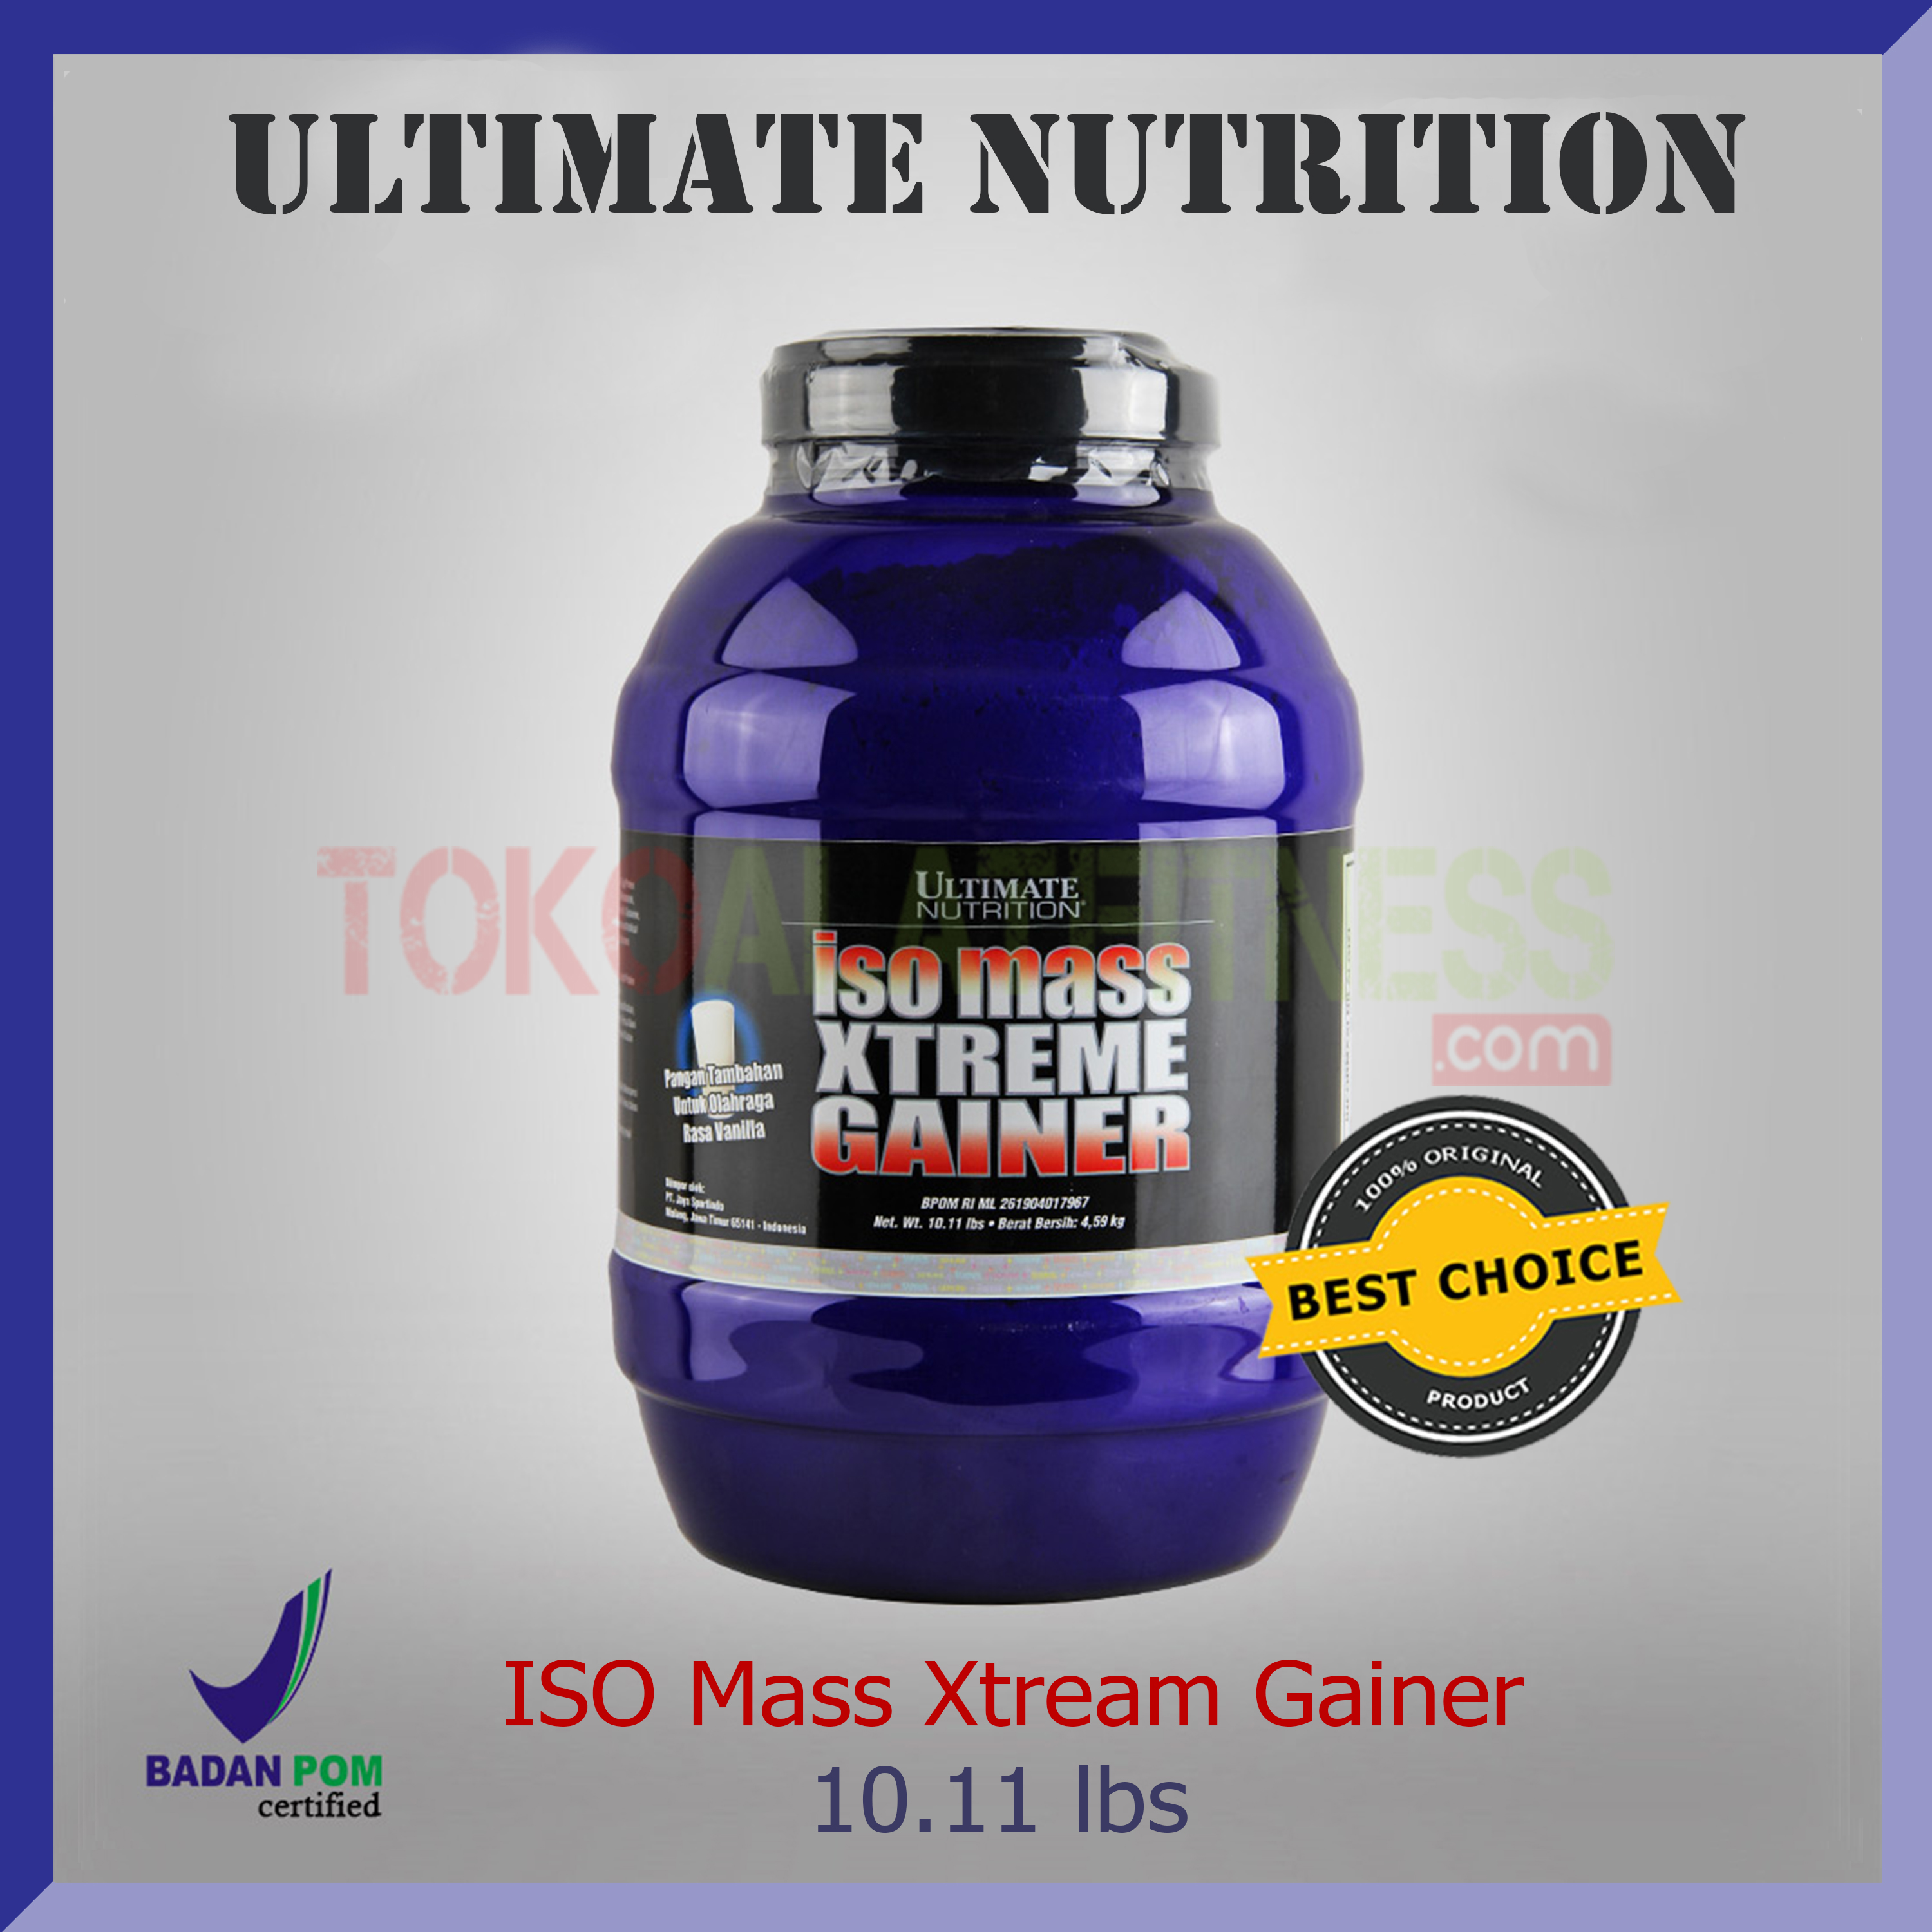 ULTIMATE NUTRITION ISO mass 1011 lbs - Suplemen Ultimate Iso Mass Xtreme Gainer Choco